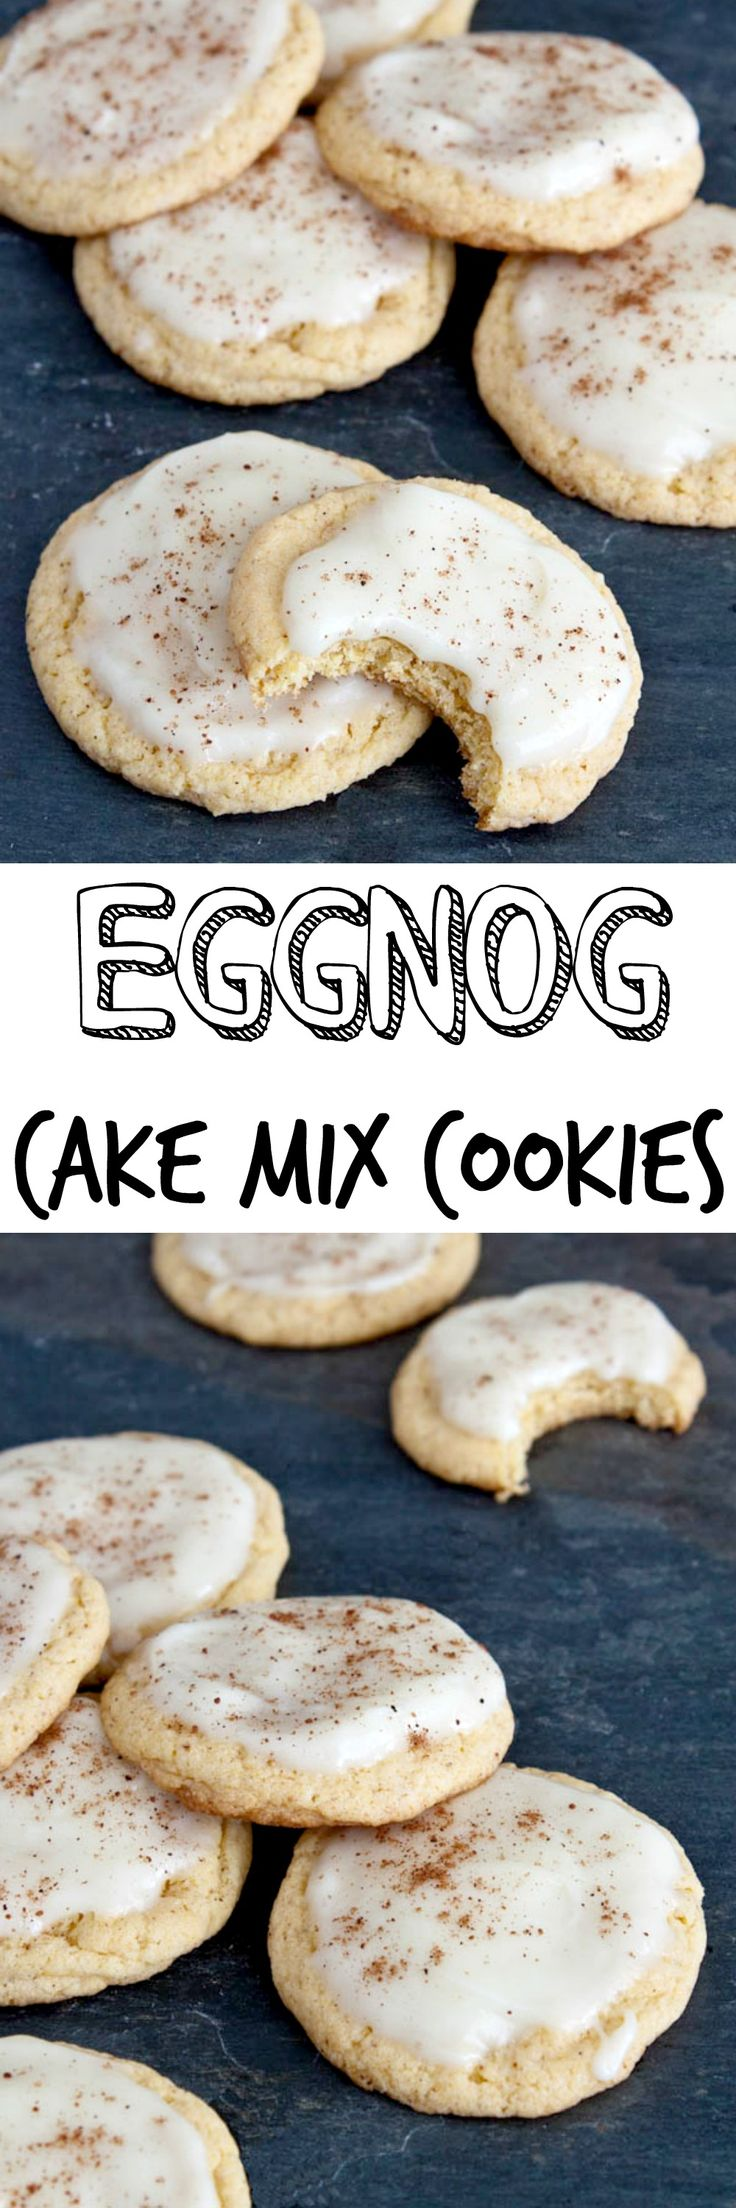 Cake mix cookies. Holiday cookies with egg nog!